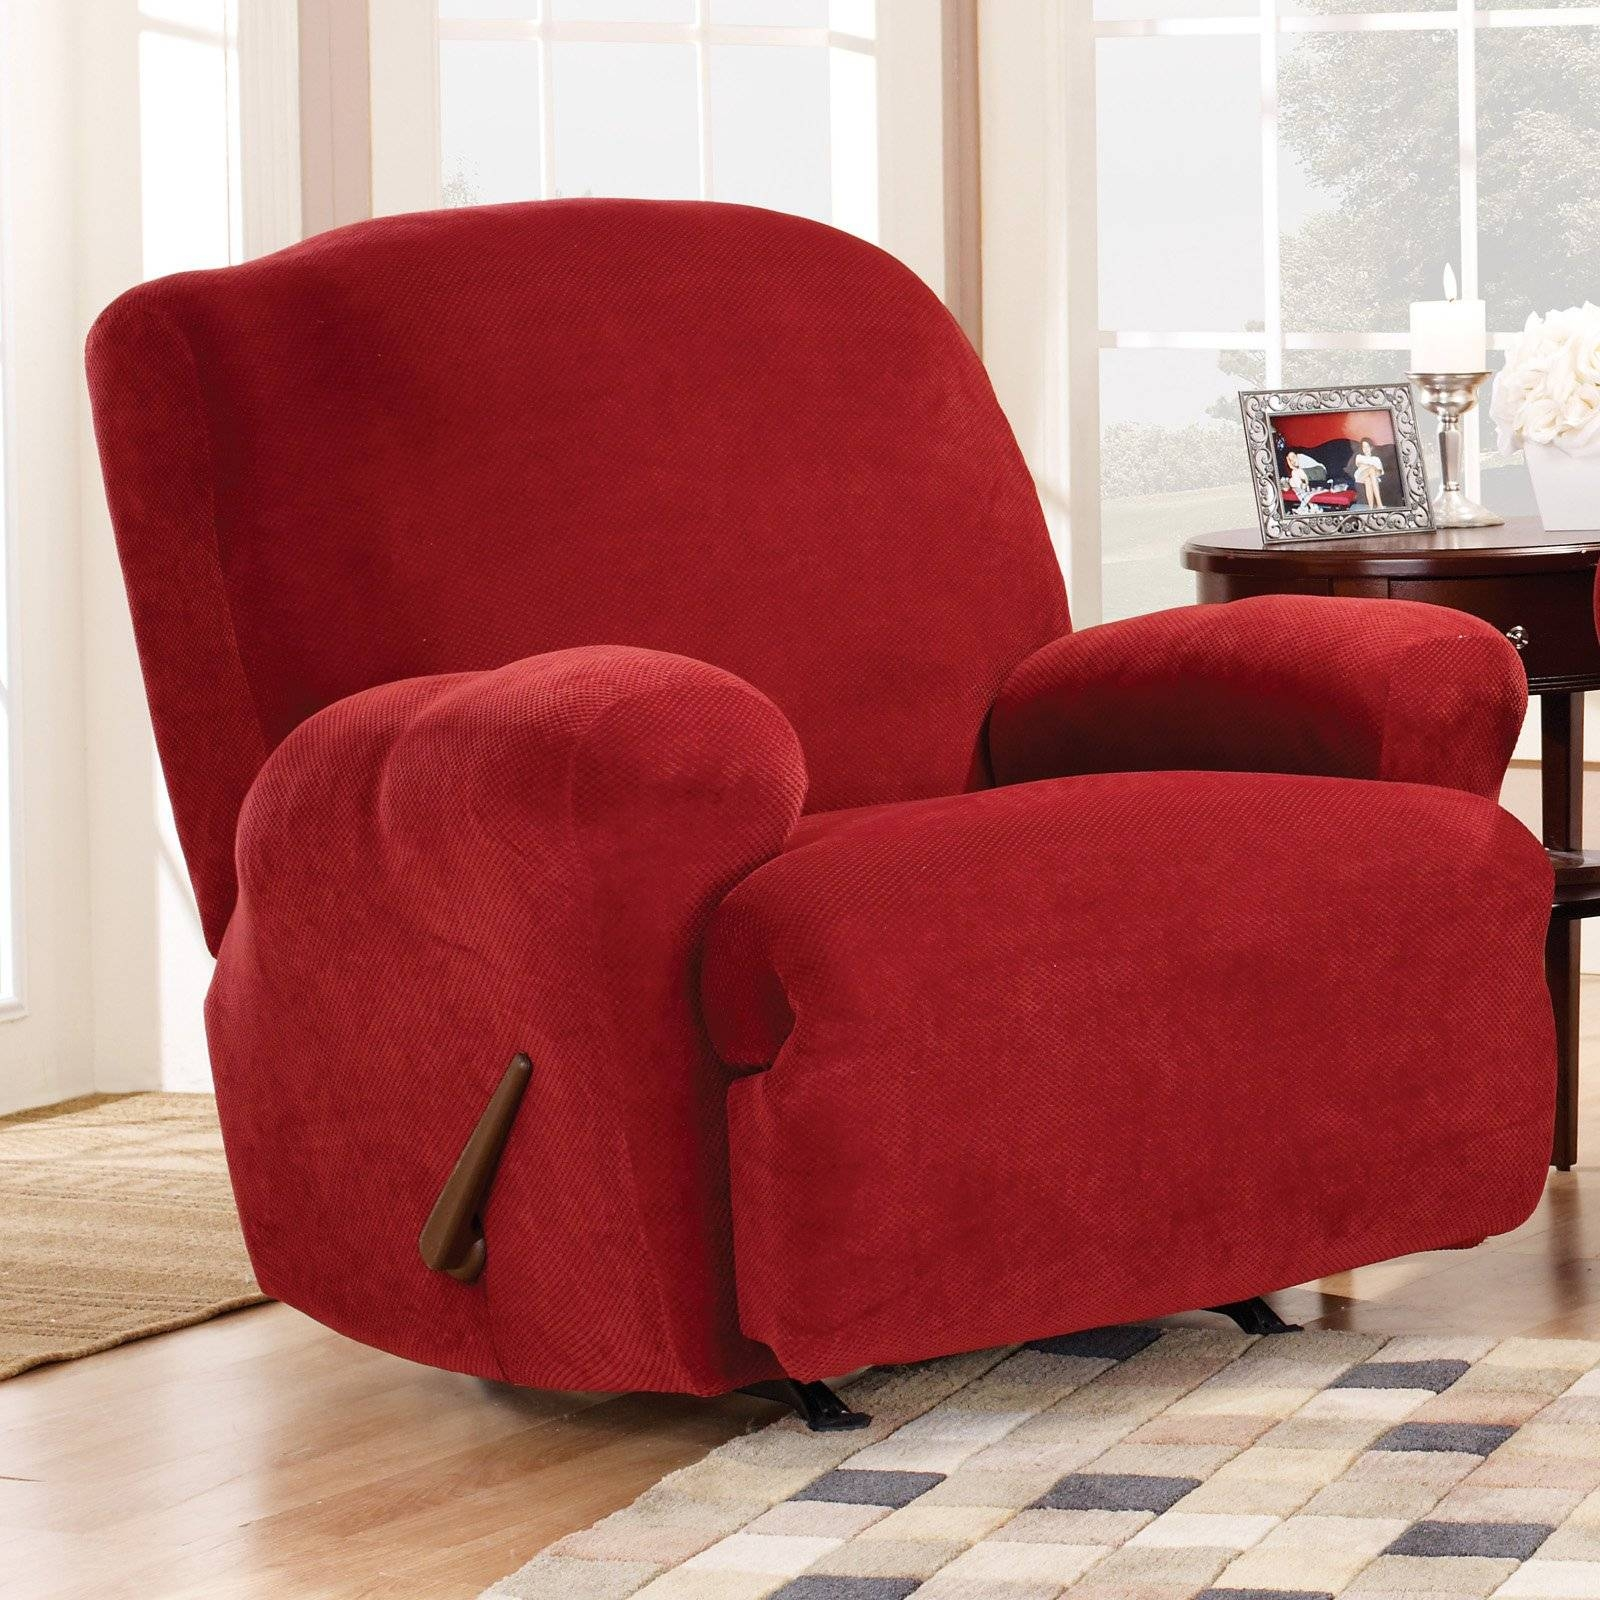 Slipcovers For Reclining Sofas And Loveseats | Centerfieldbar within Slipcover for Recliner Sofas (Image 9 of 15)